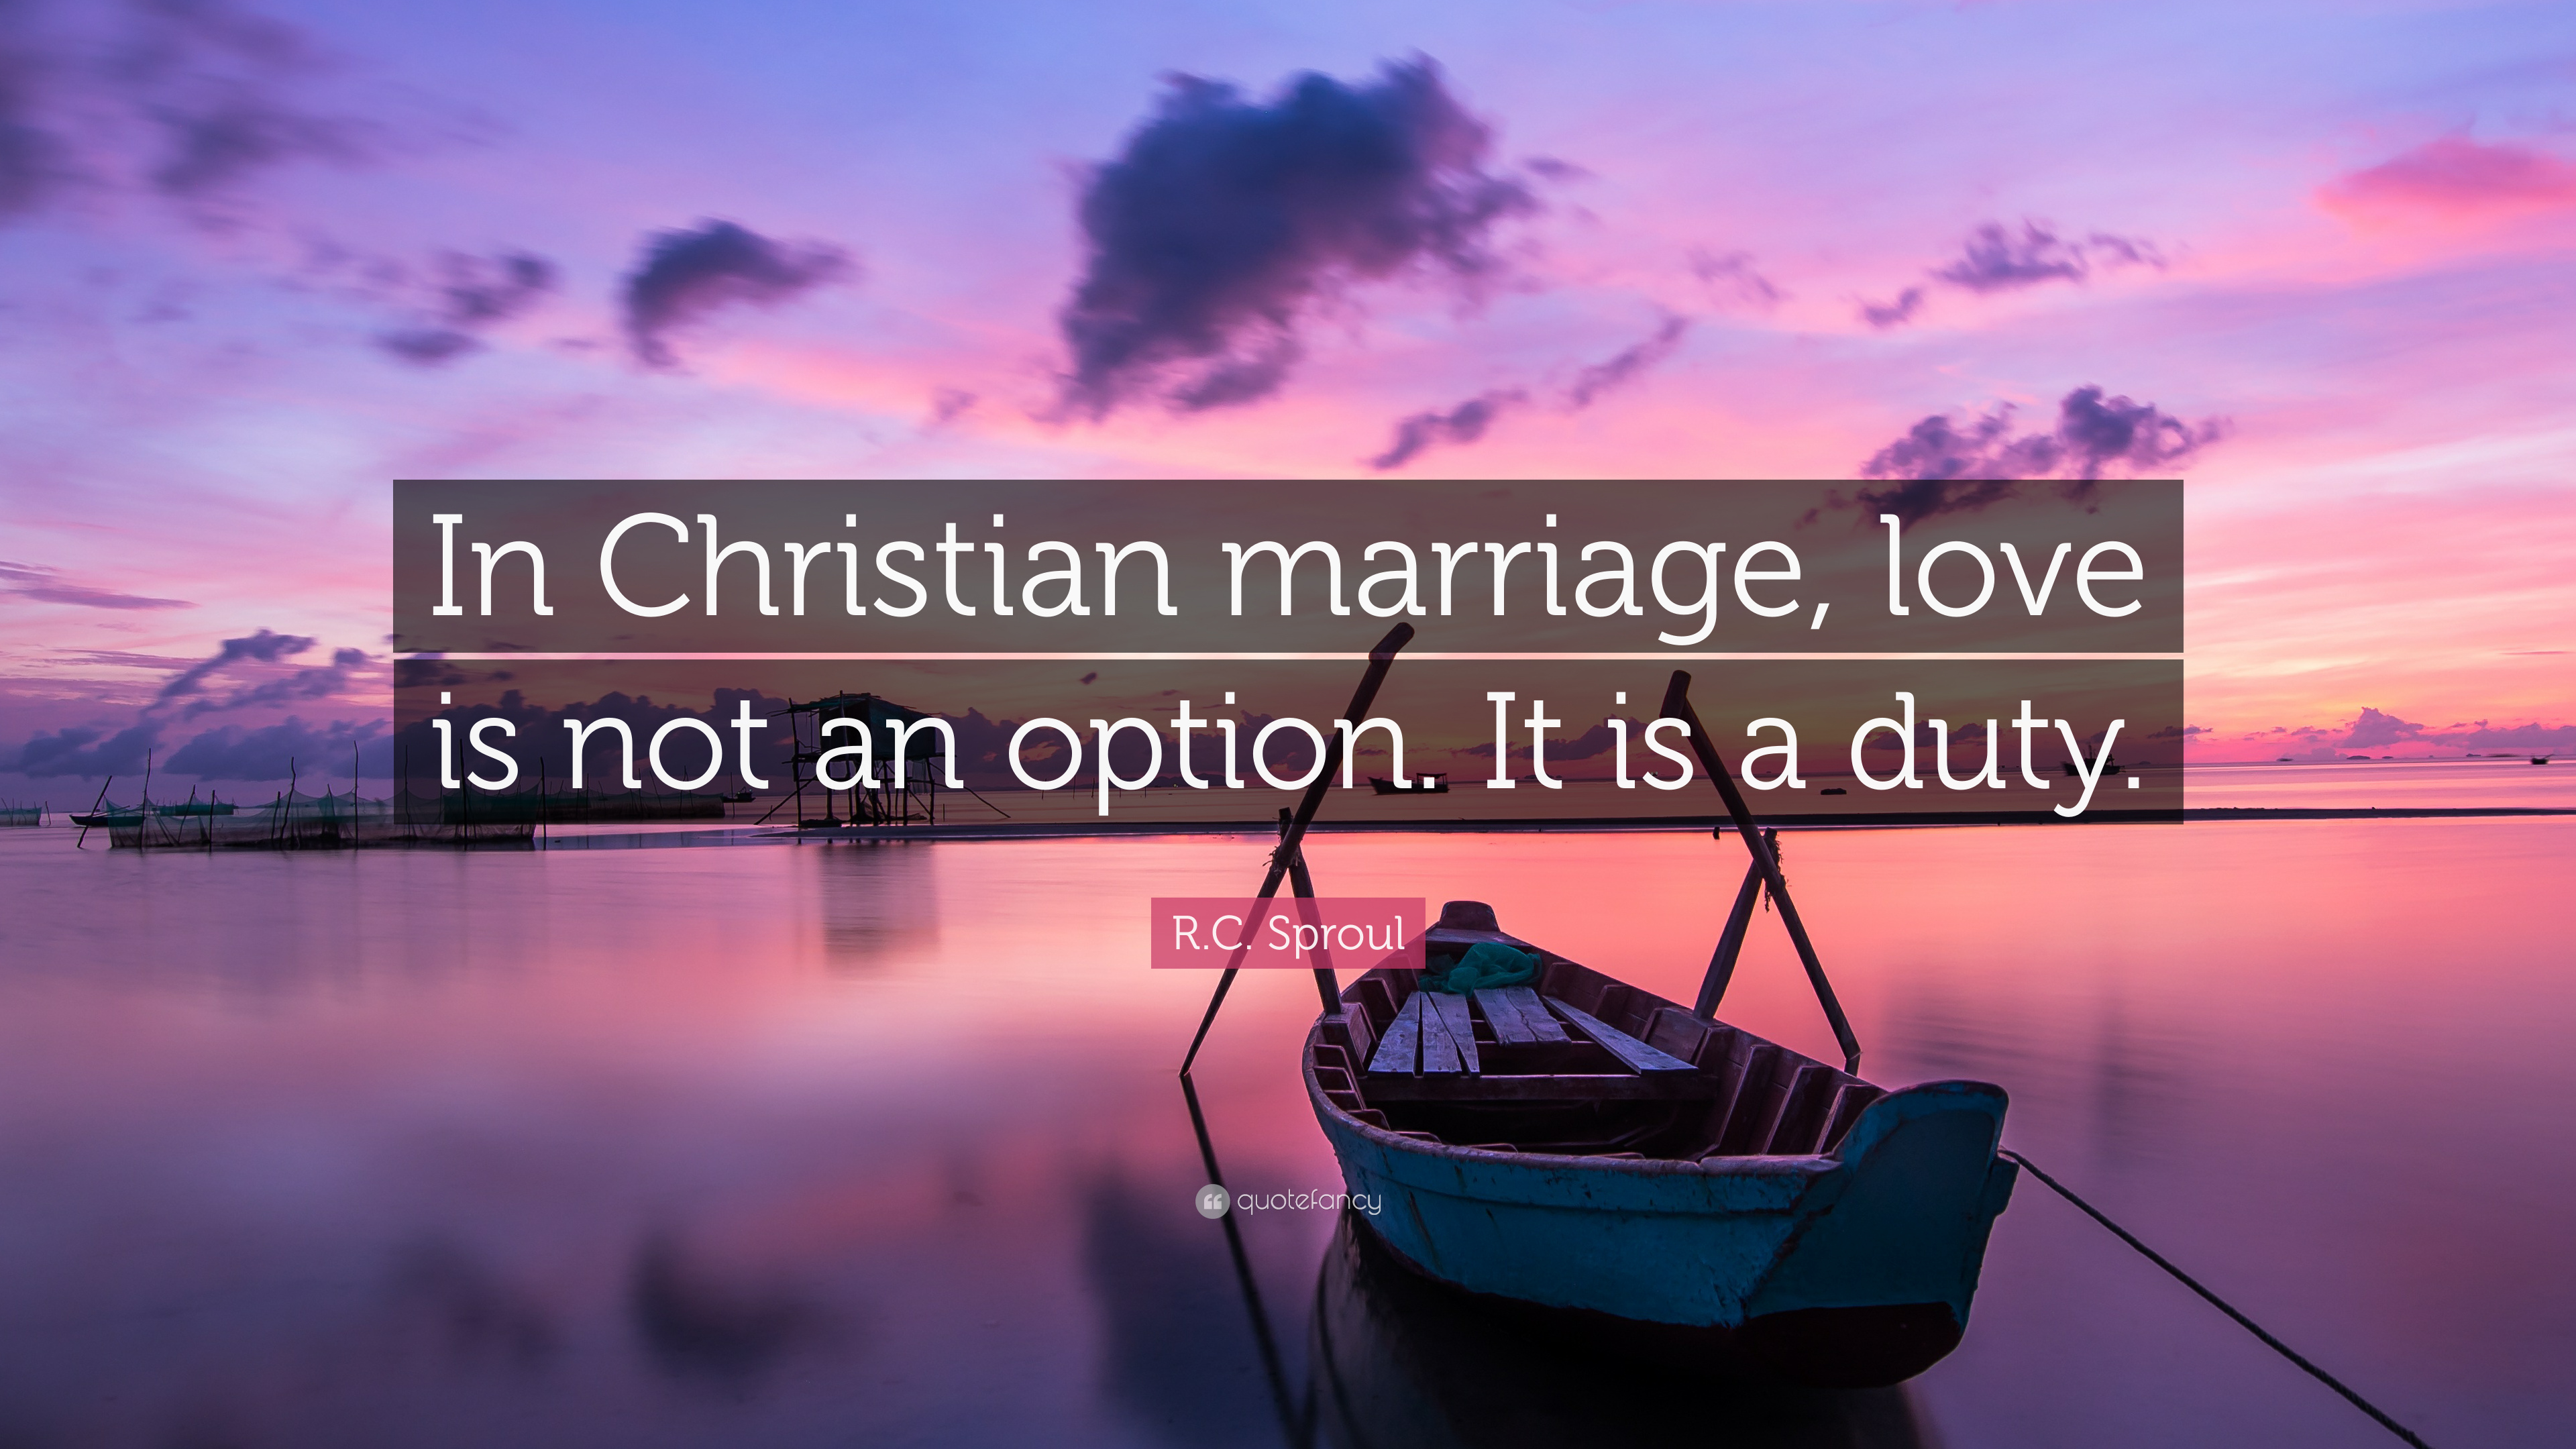 R C Sproul Quote In Christian Marriage Love Is Not An Option It